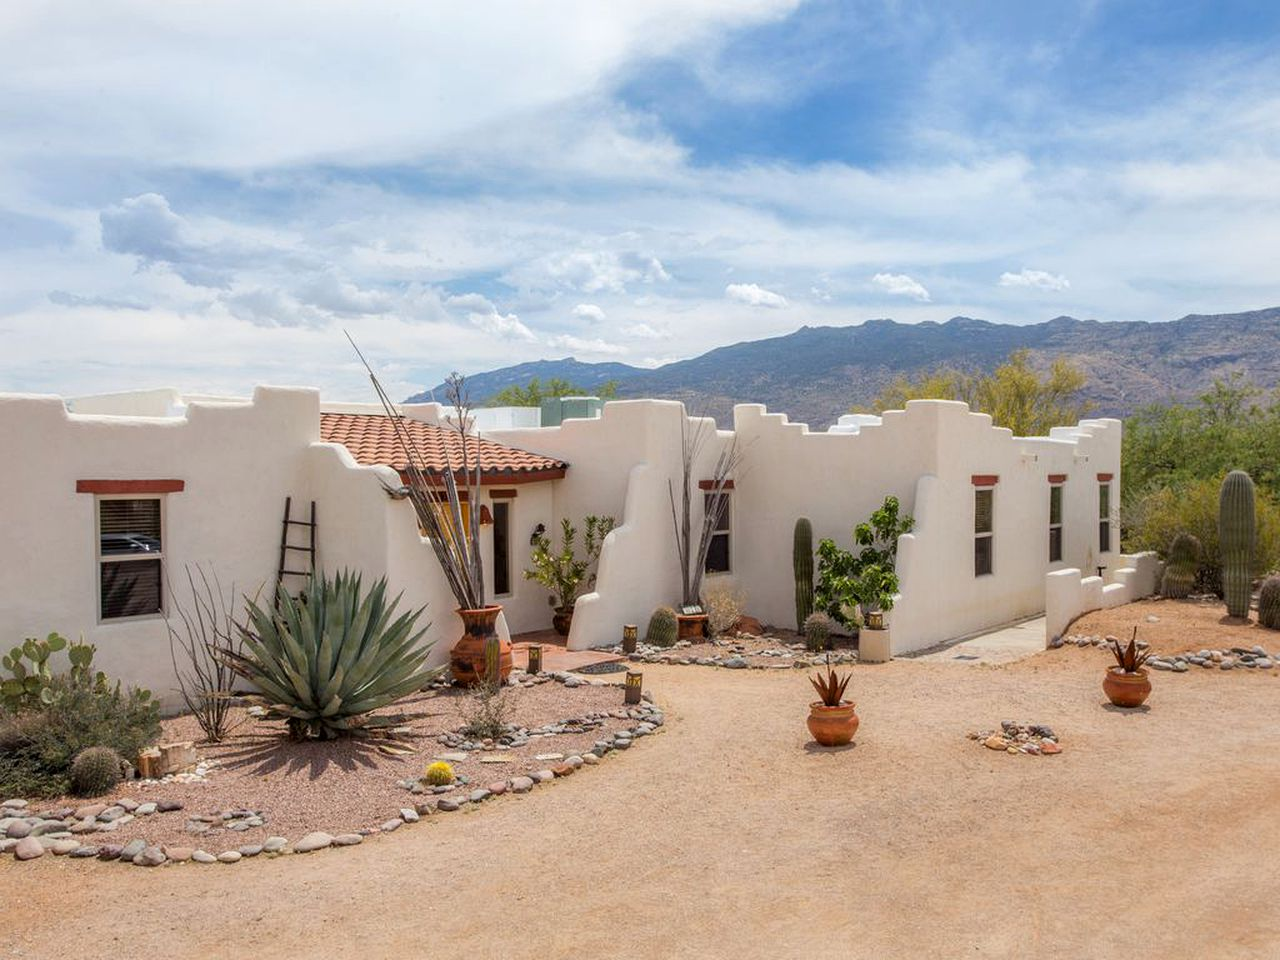 Adobe Rental Near Tucson Arizona